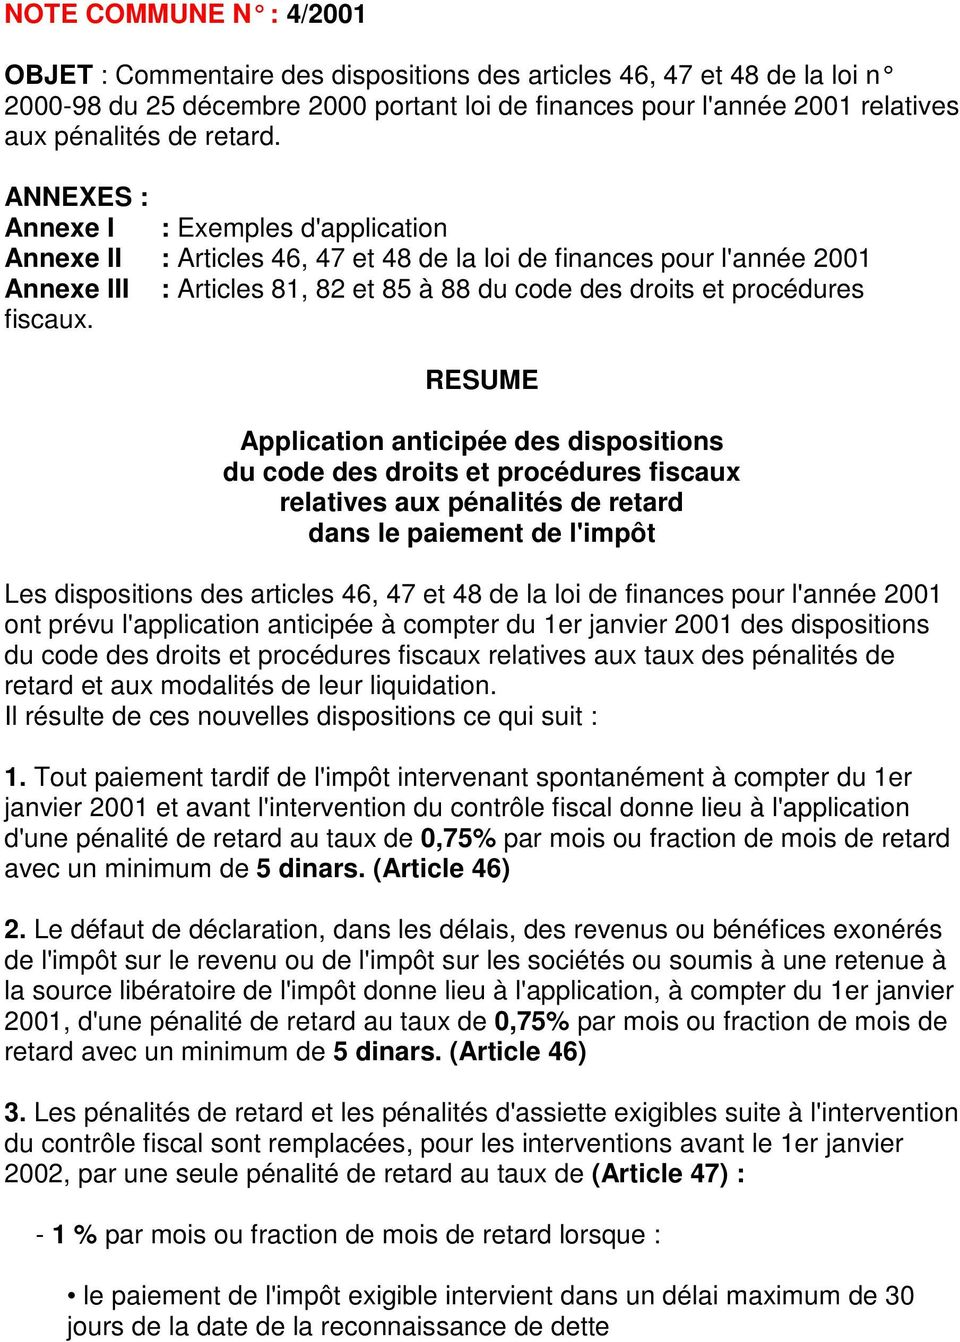 ANNEXES : Annexe I : Exemples d'application Annexe II : Articles 46, 47 et 48 de la loi de finances pour l'année 2001 Annexe III : Articles 81, 82 et 85 à 88 du code des droits et procédures fiscaux.